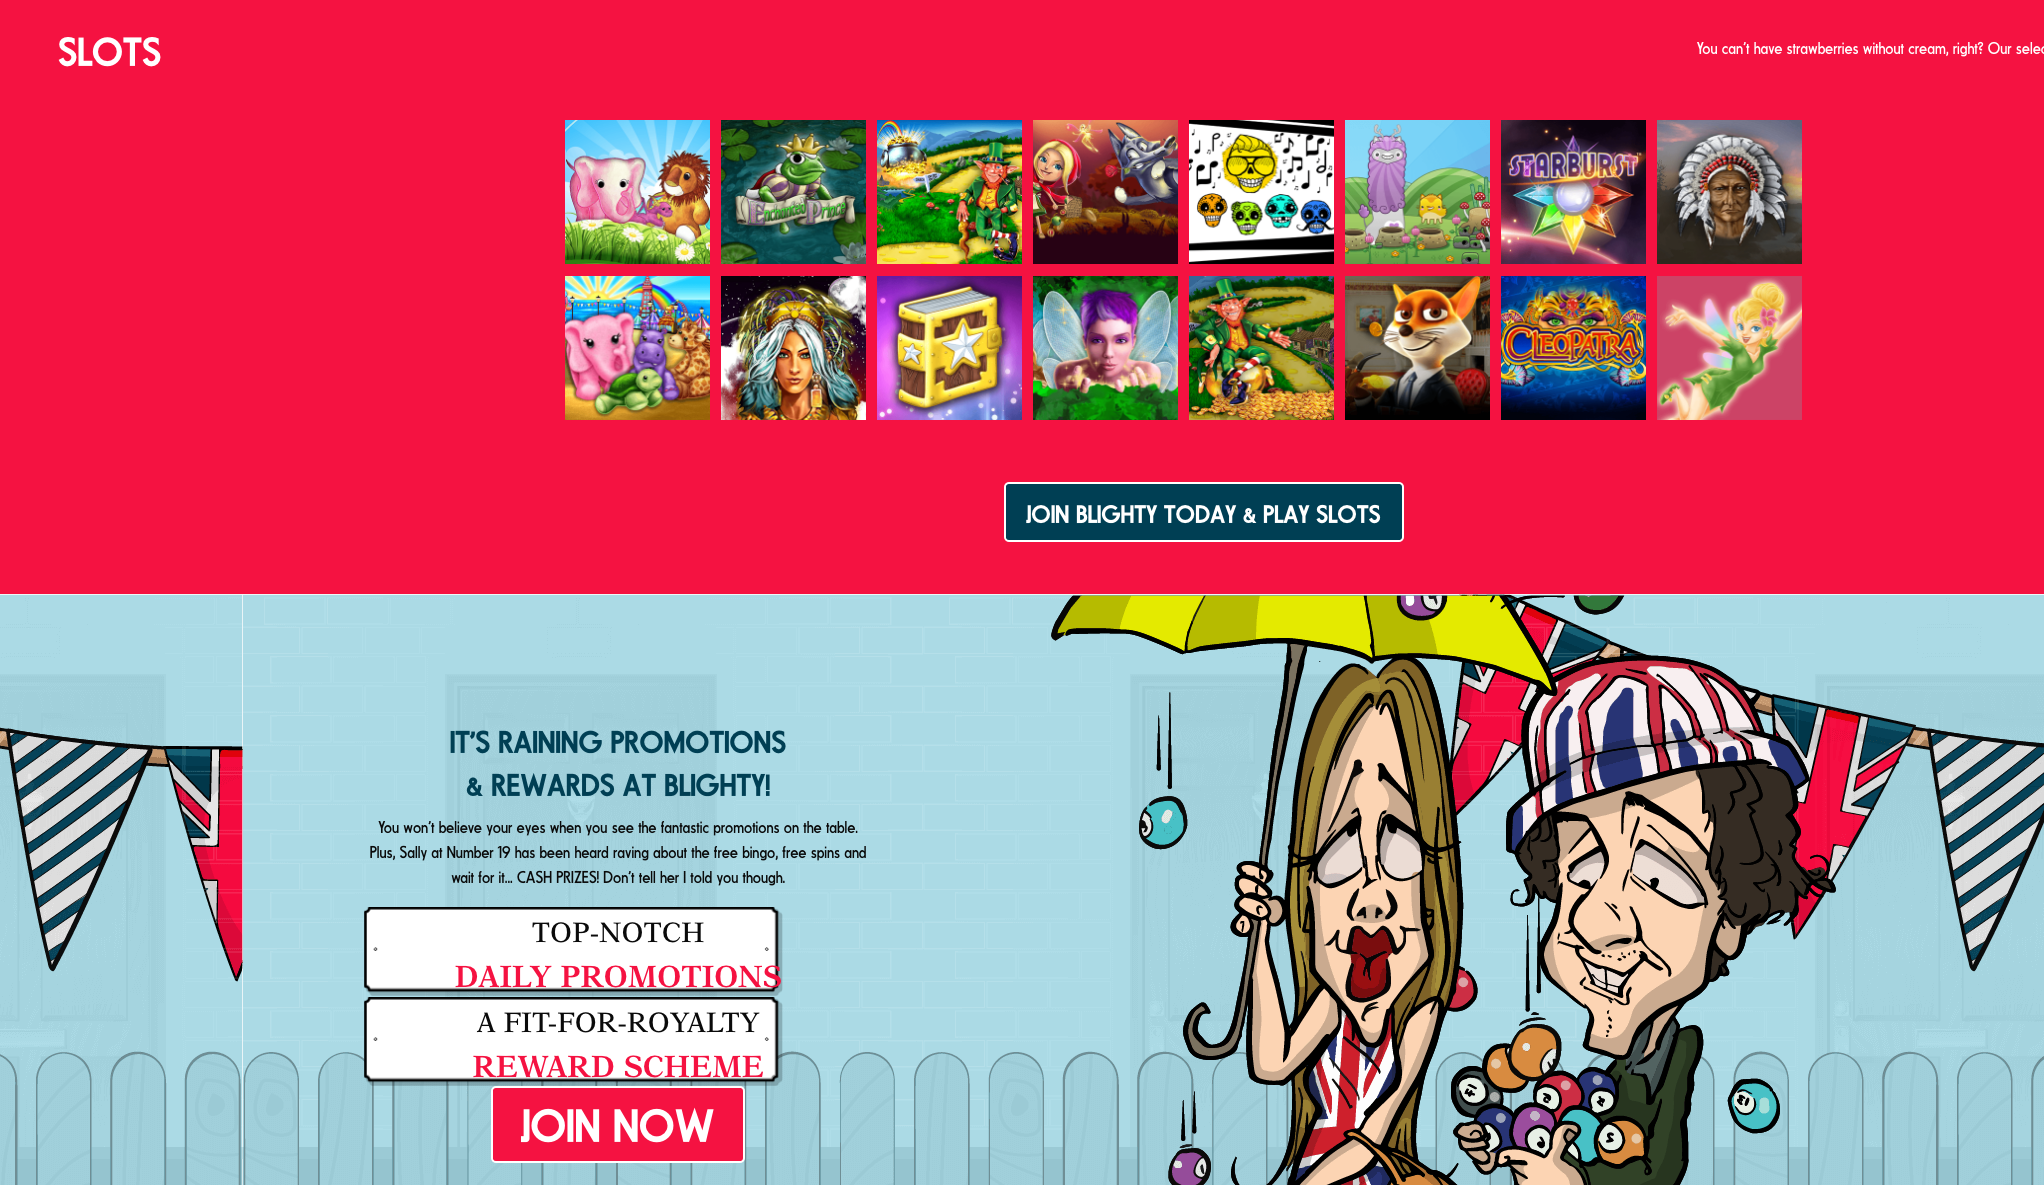 All Active Blackpool Pleasure Beach Discount Codes & Vouchers - Already redeemed 4470 times